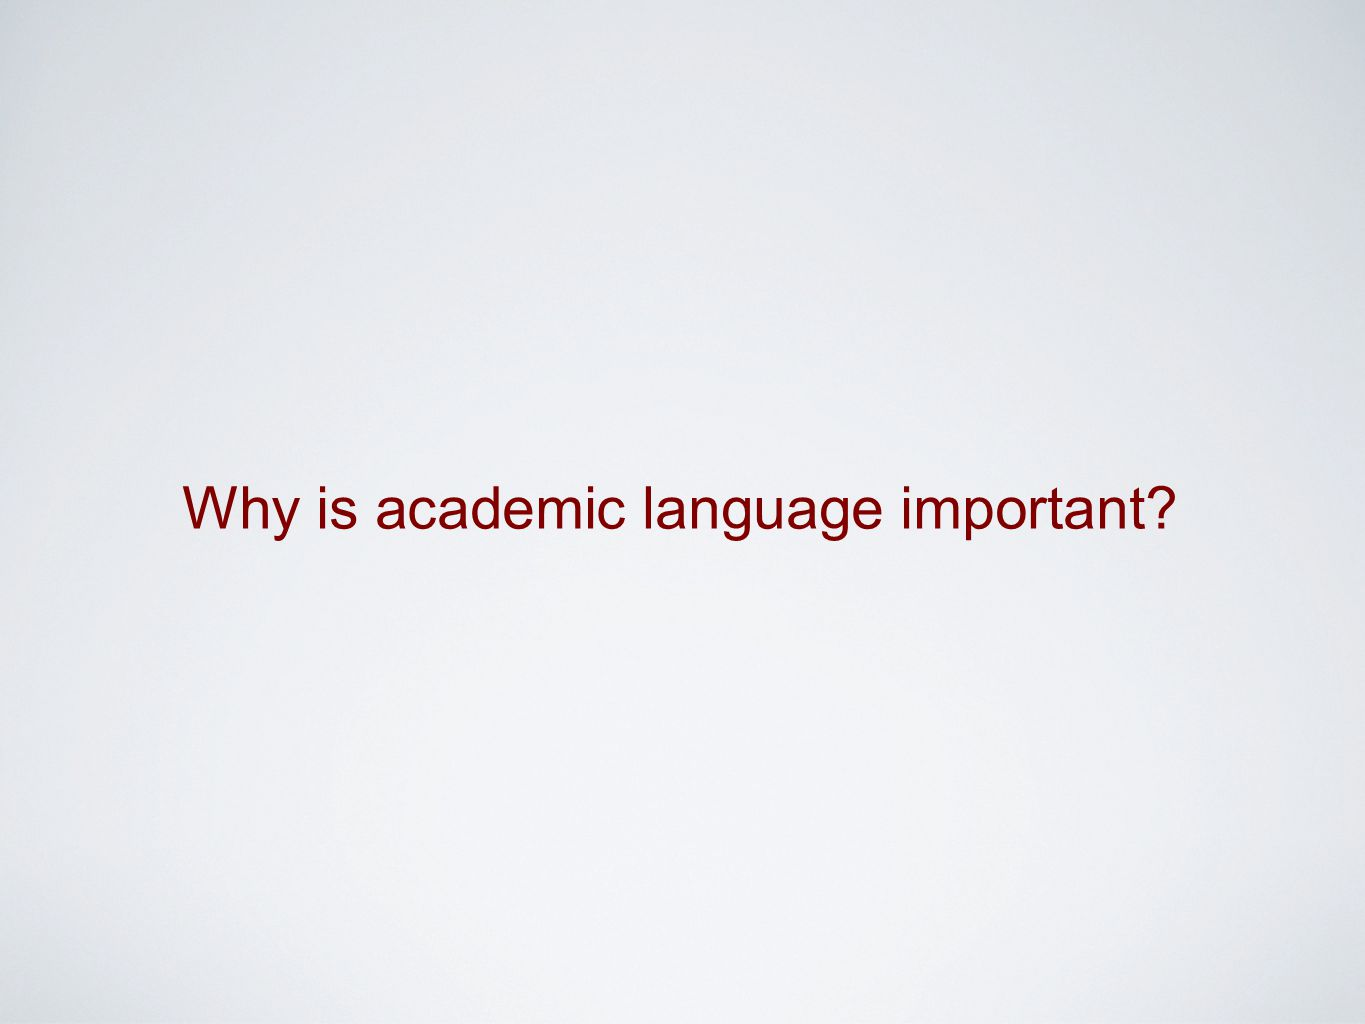 Why is academic language important